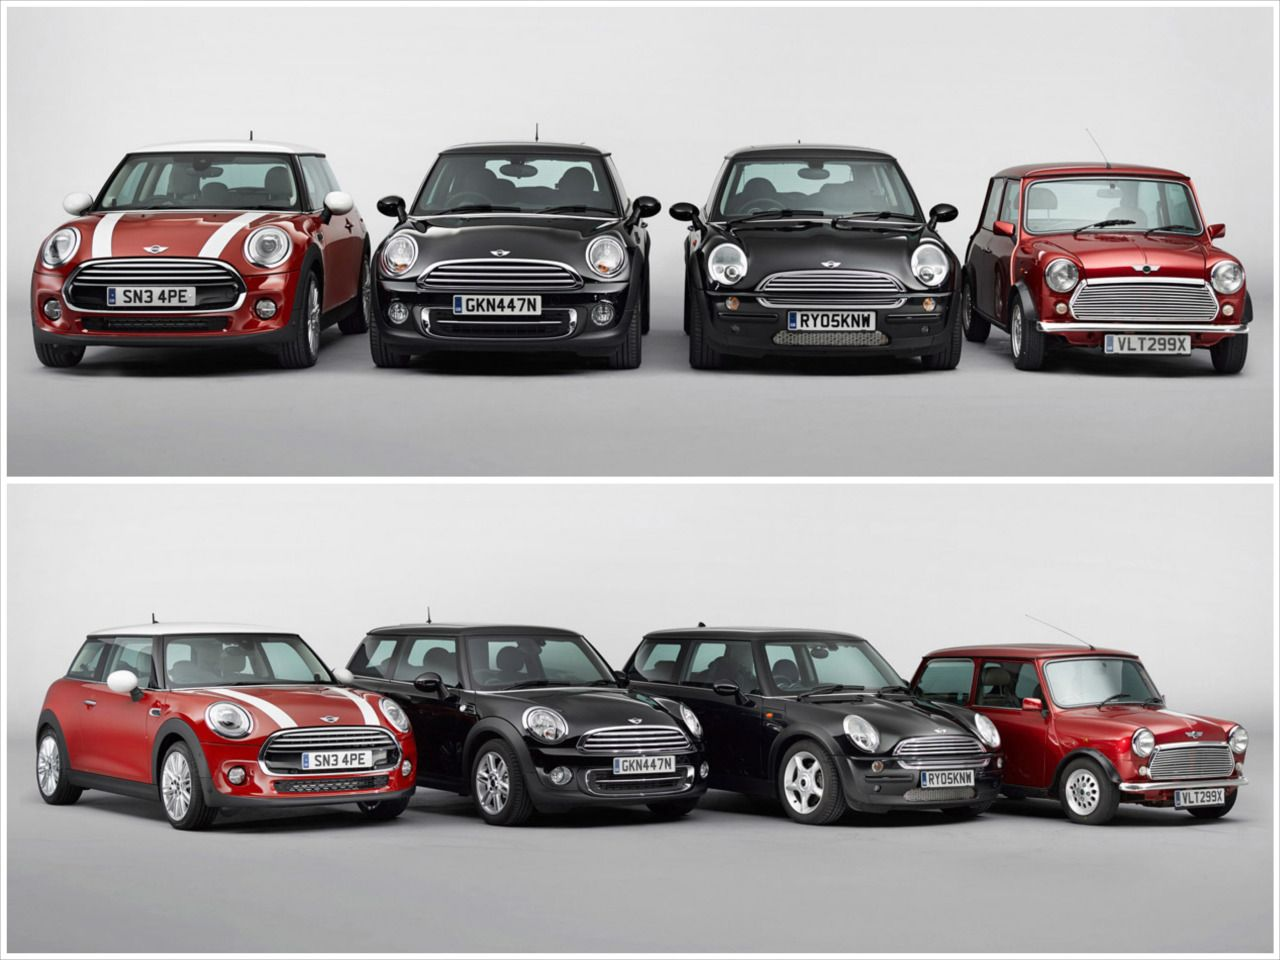 Mini Cooper S Four Cylinder Engine 189 Hp 207 Lb Ft Of Torque From Official Press Release Introducing The New